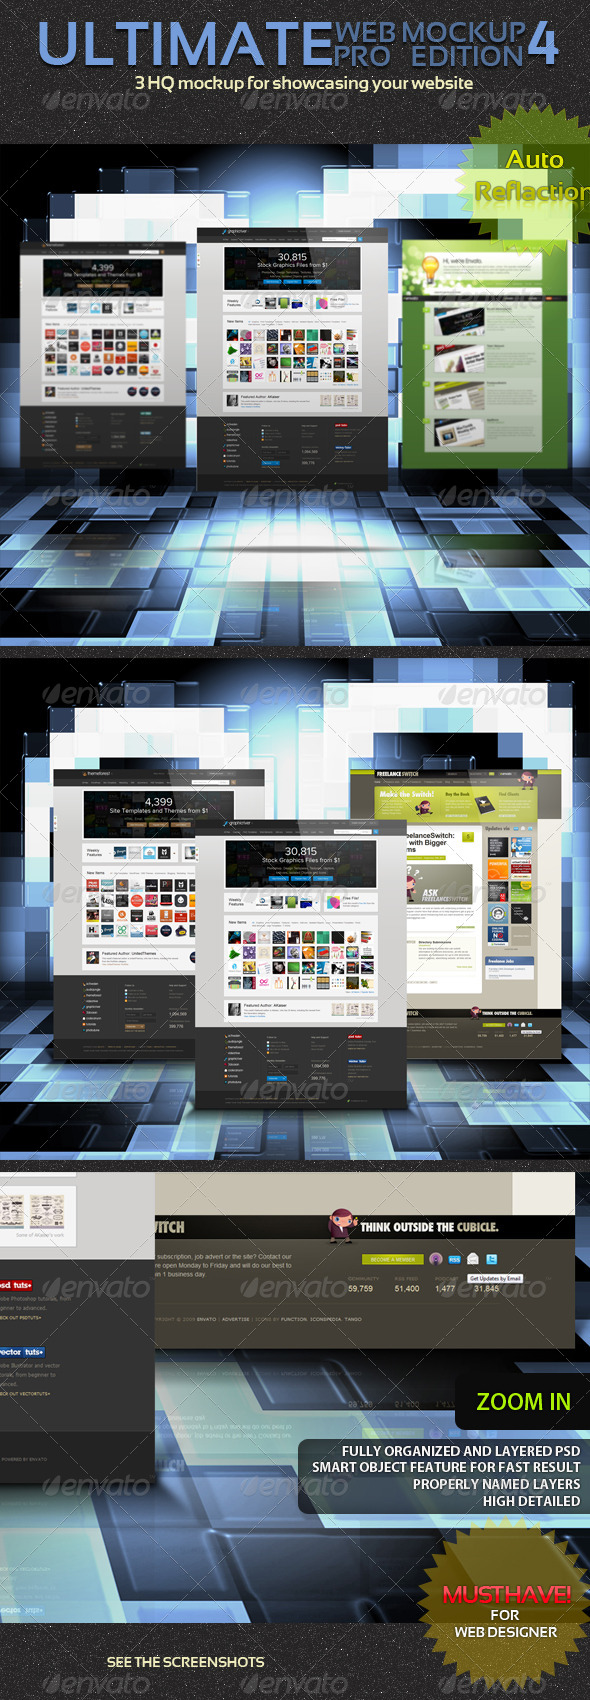 Ultimate Web Mockup Pack 4